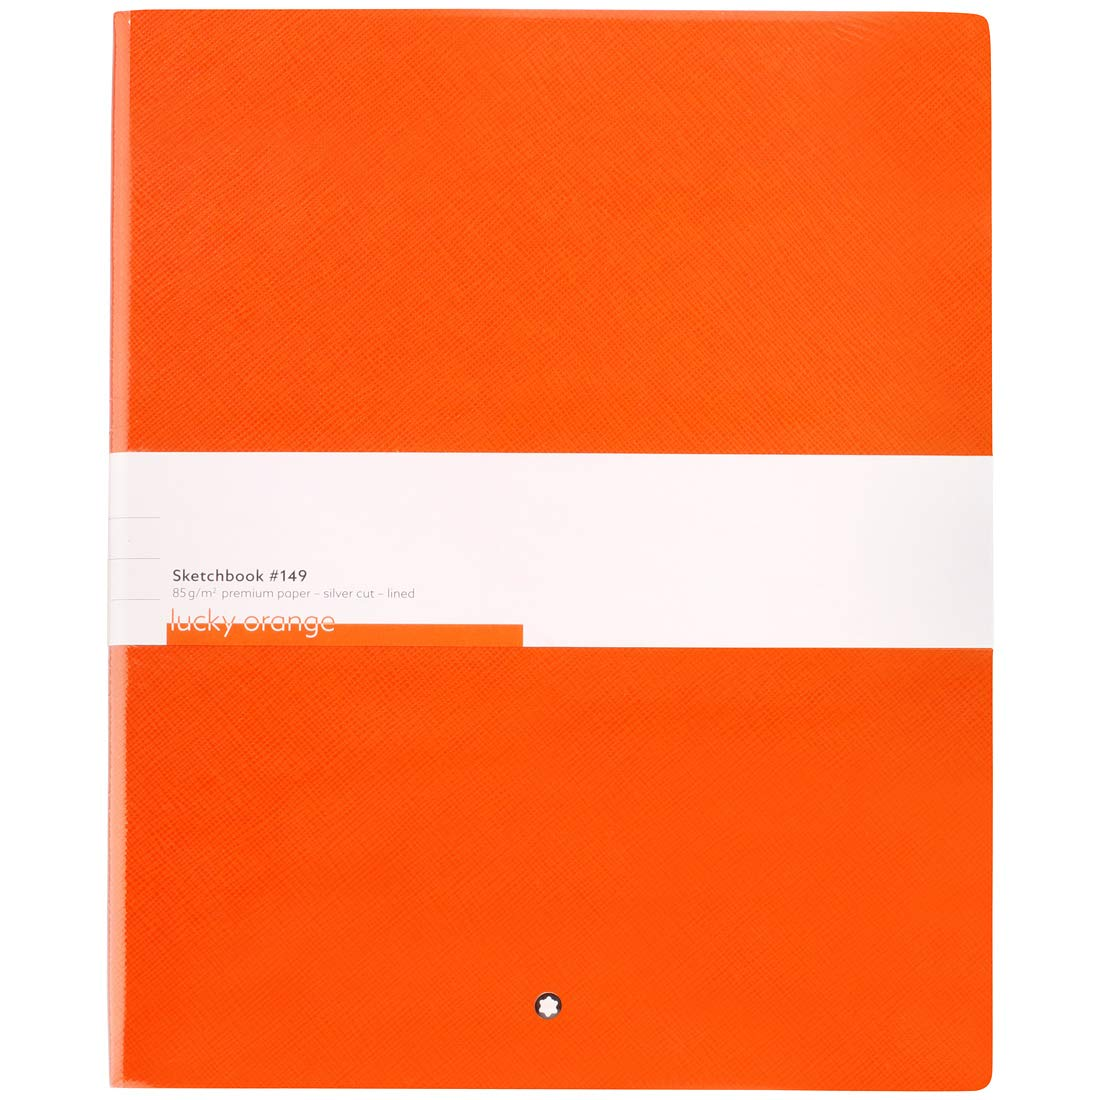 Montblanc Sketchbook 116224 Fine Stationery #149 - Leather Notebook A4 Lined with Soft Cover - Lucky Orange - 272 Pages by MONTBLANC